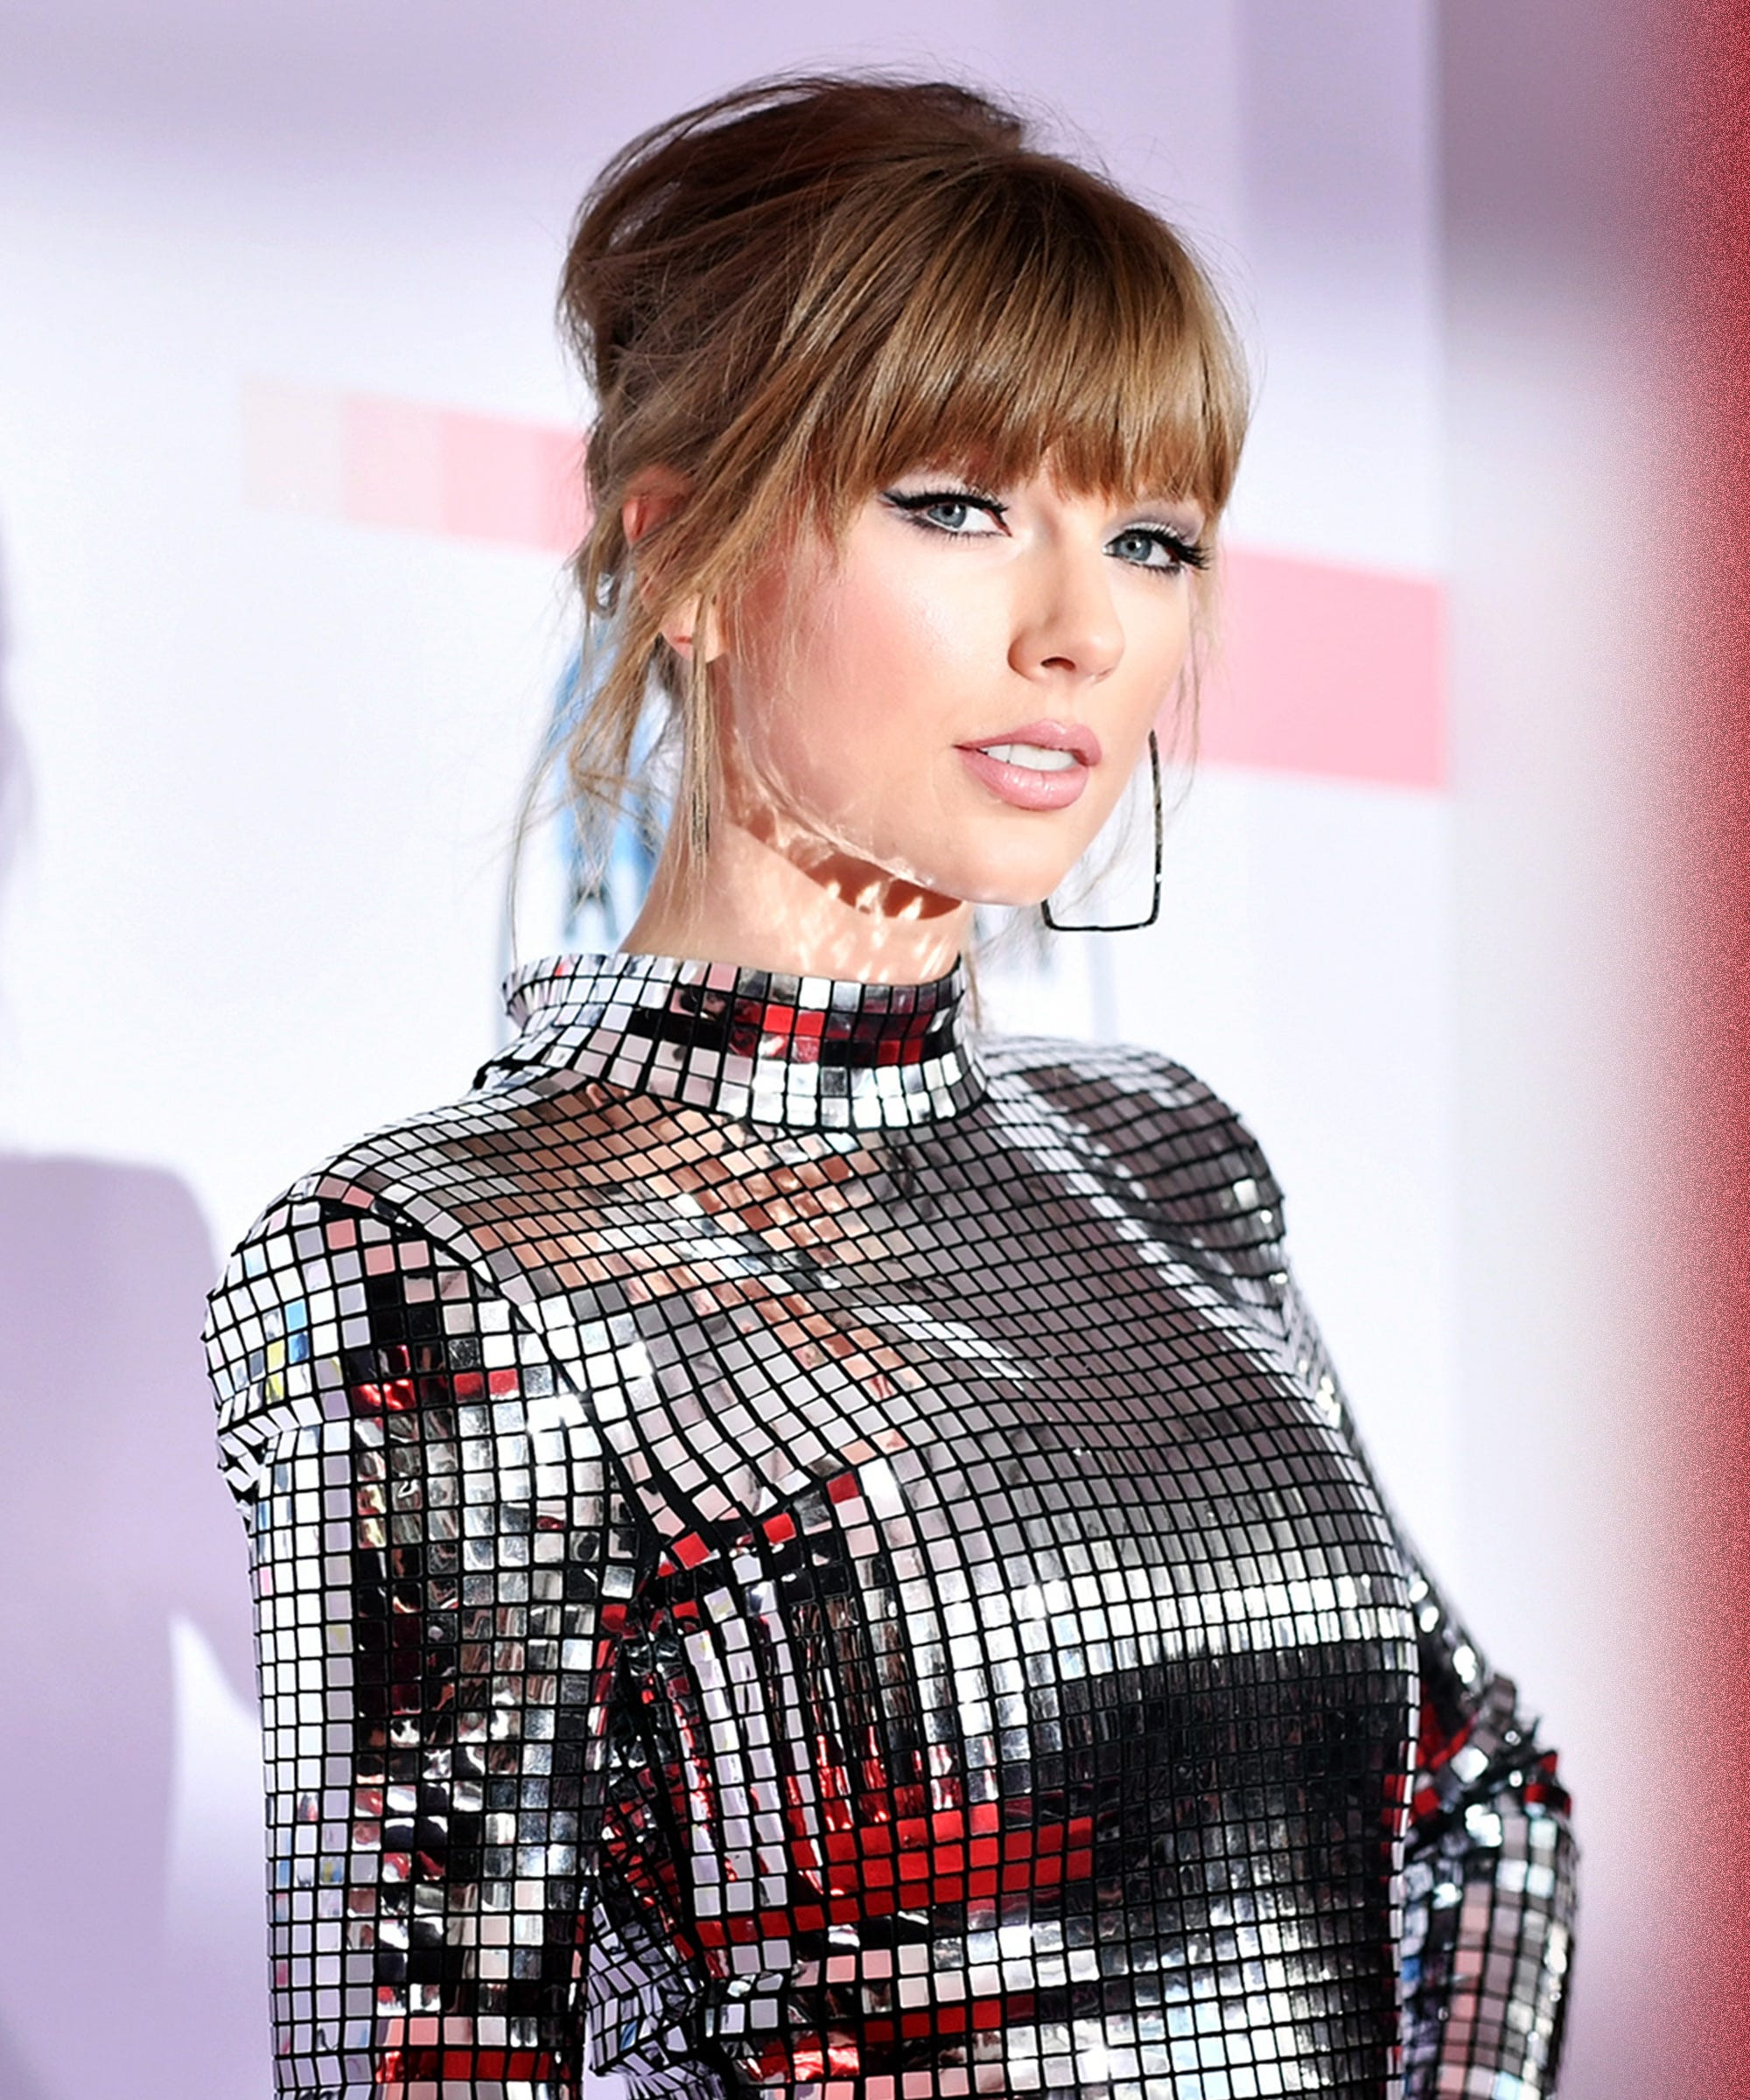 Don't Ask Taylor Swift If She's Ready To Settle Down Just Because She's Turning 30